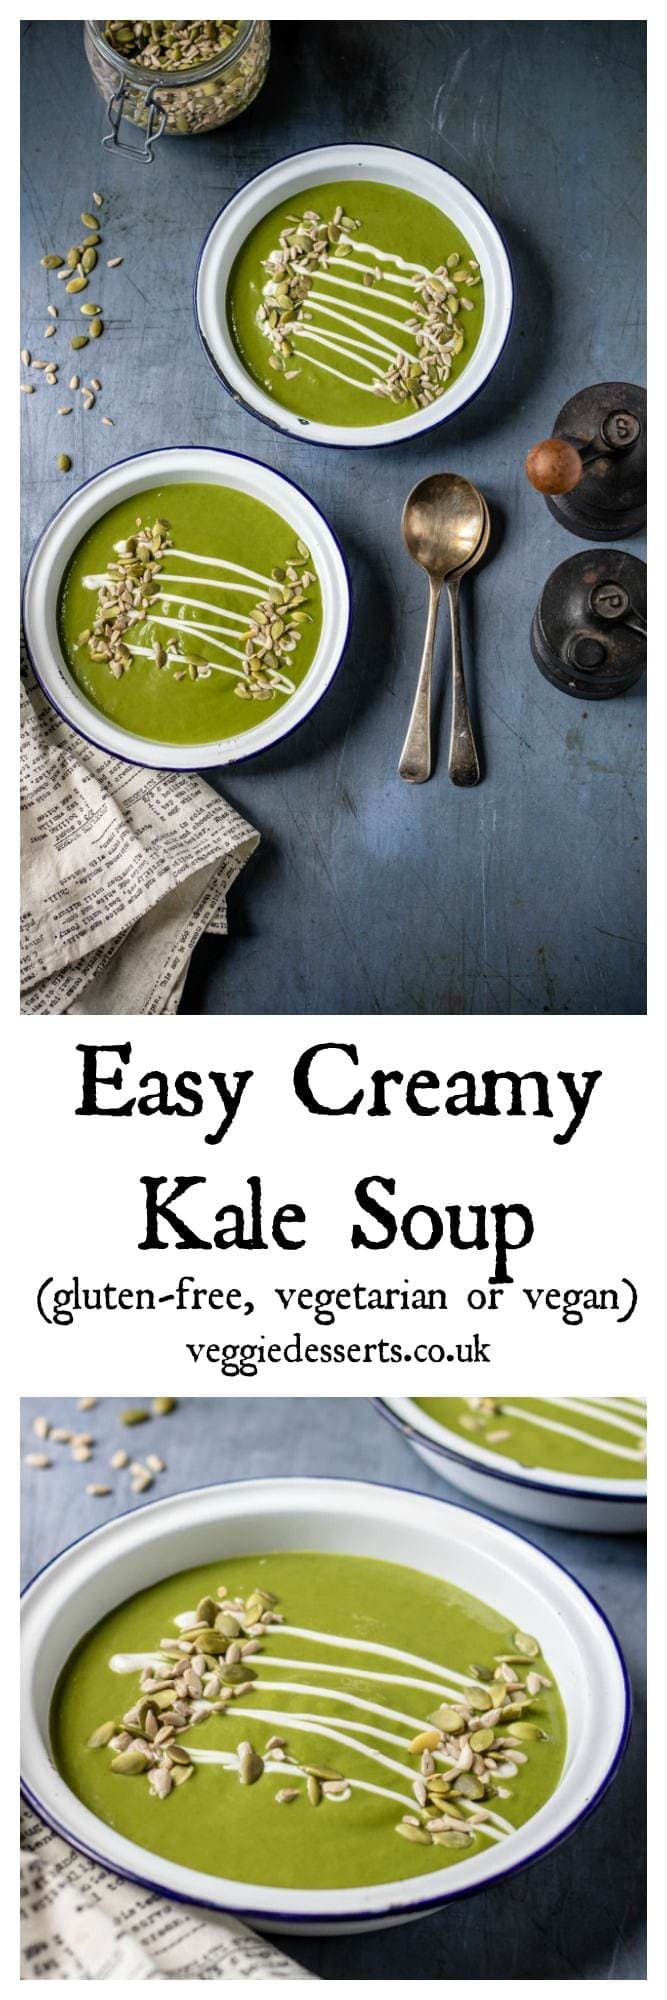 Easy Creamy Kale Soup  - ready in just 20 minutes, this nourishing soup is full of flavour. It's naturally vegetarian and gluten free, but easily vegan. Great on it's own or topped with a drizzle of cream and sprinkling of seeds. Only 150 calories per generous bowl. #kalesoup #soup #bowlfood #kalerecipes #vegansoup #greensoup #souprecipe #slimmingworldrecipes #weightwatchersrecipes